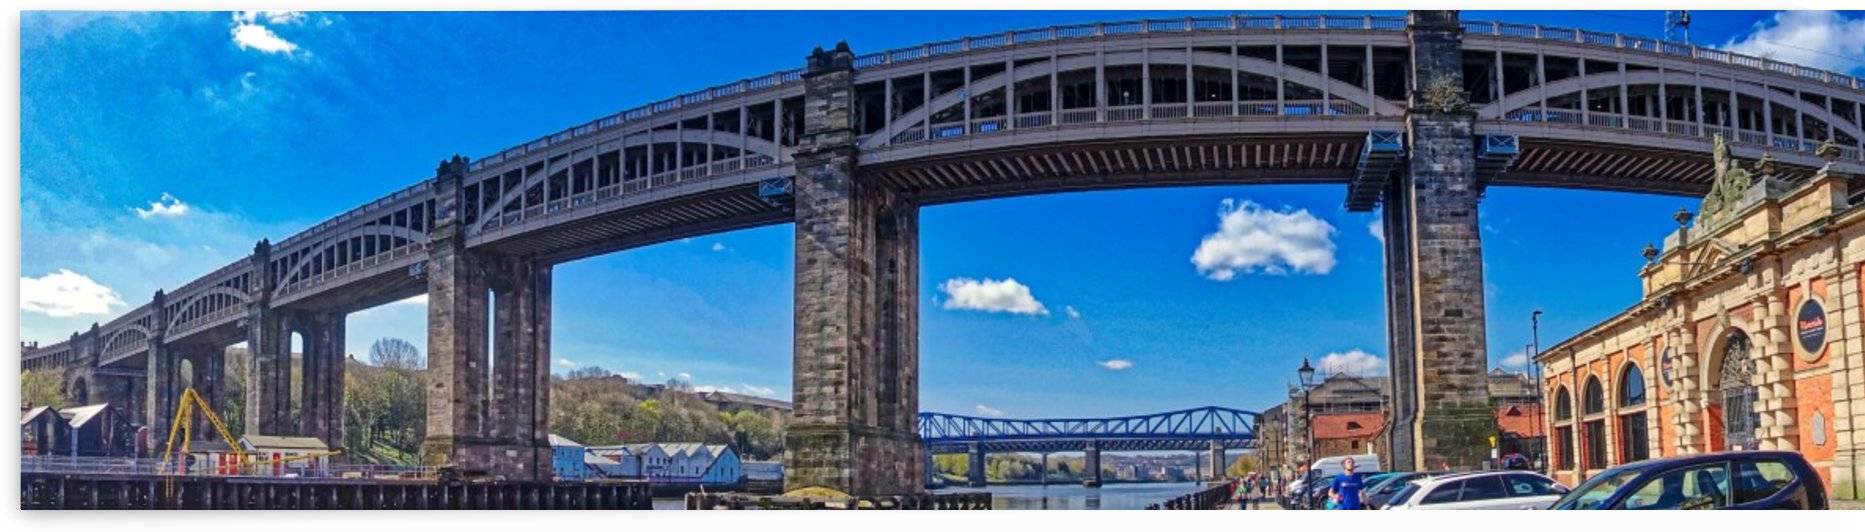 Newcastle railway bridge by Andy Jamieson